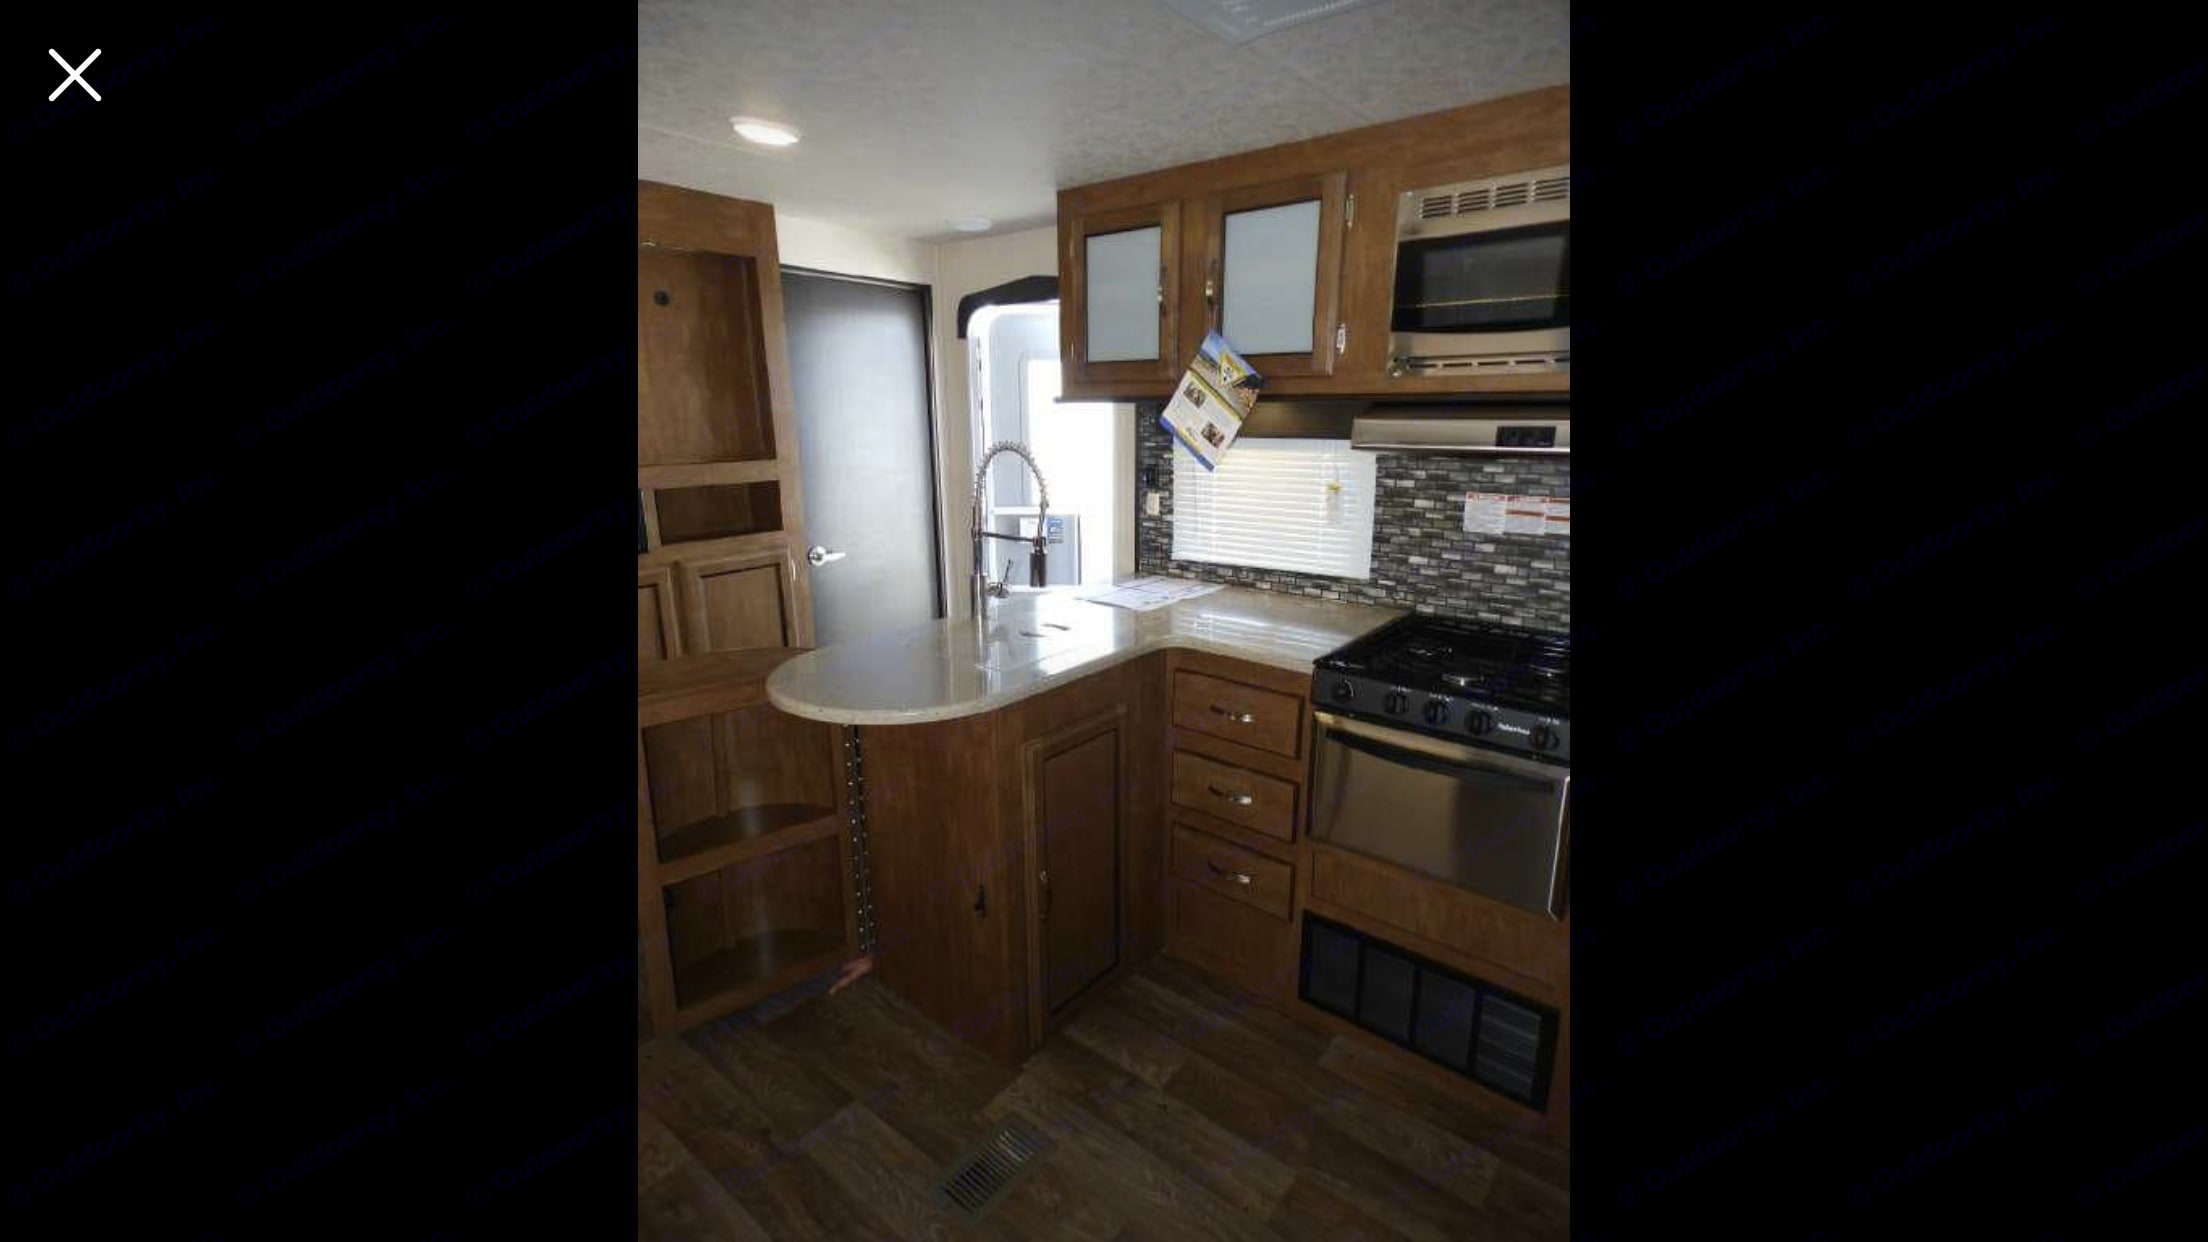 Full Kitchen, Gas Stove, Oven, Microwave, Refrigerator & Freezer. With plenty of pantry space.. Forest River Salem 2018